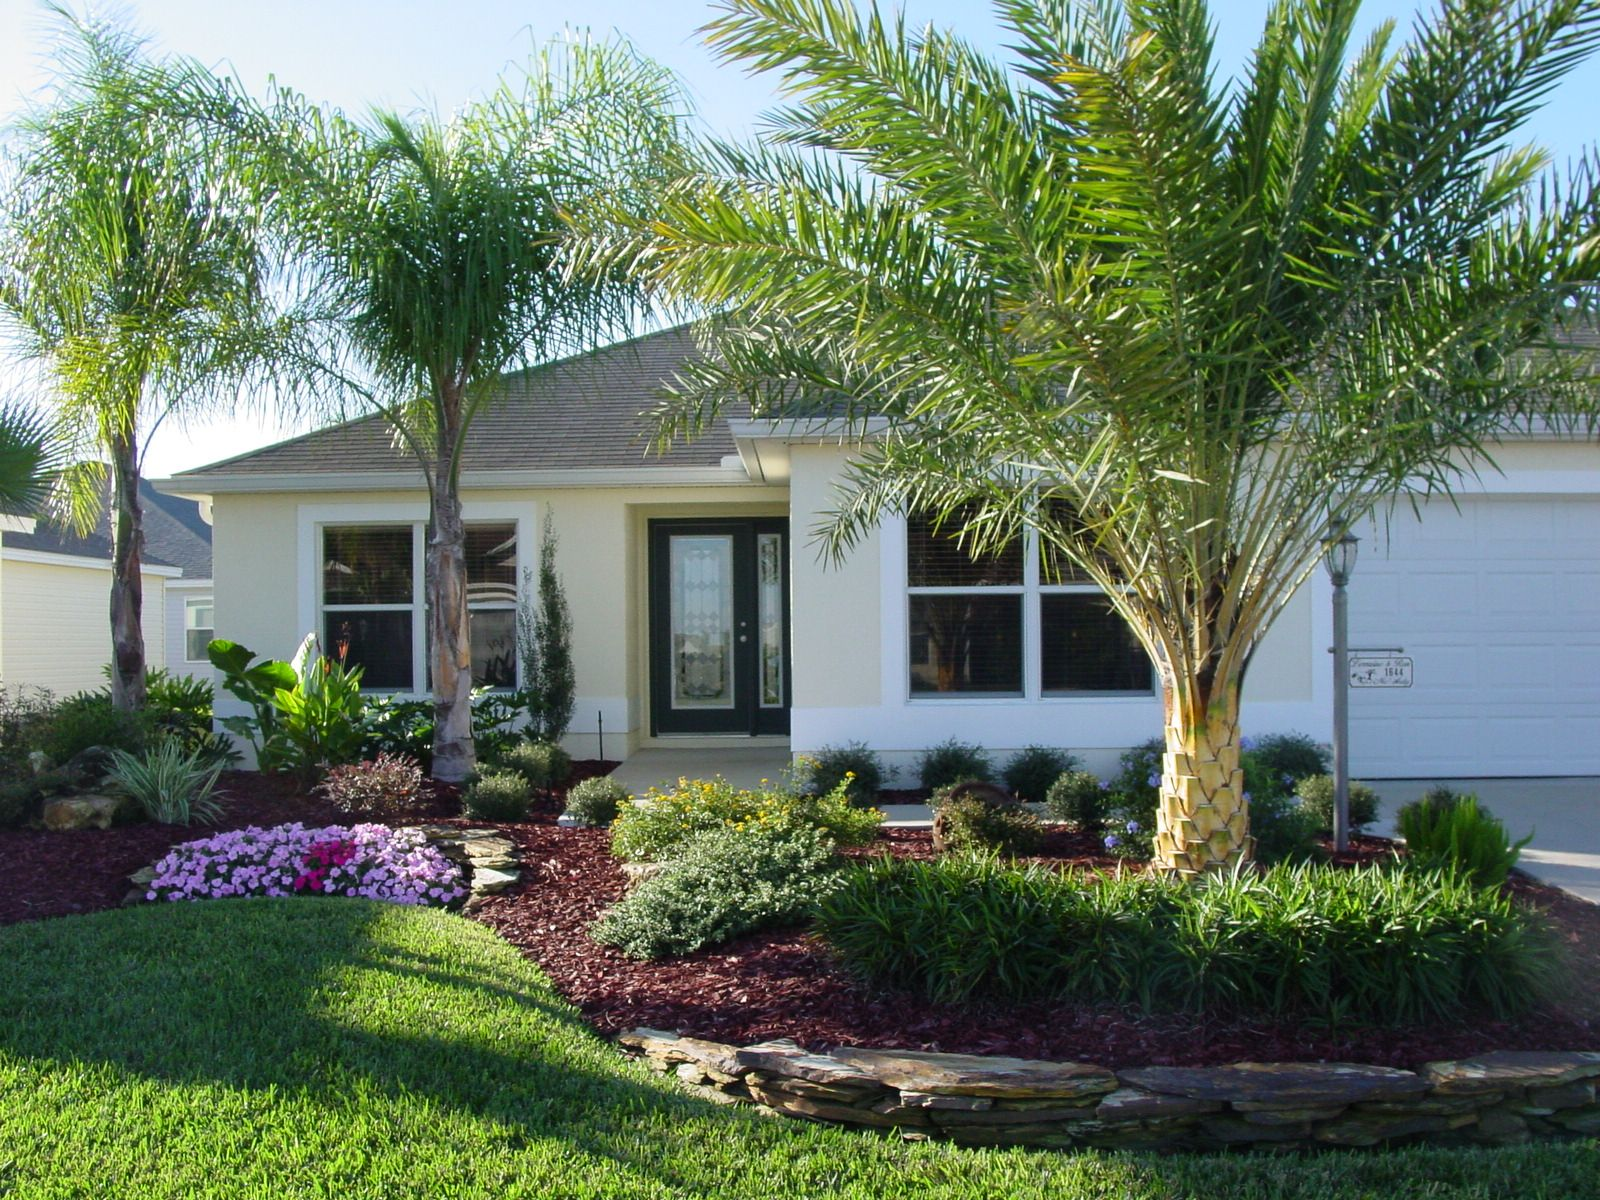 florida landscaping ideas rons landscaping inc about us - Garden Ideas In Florida